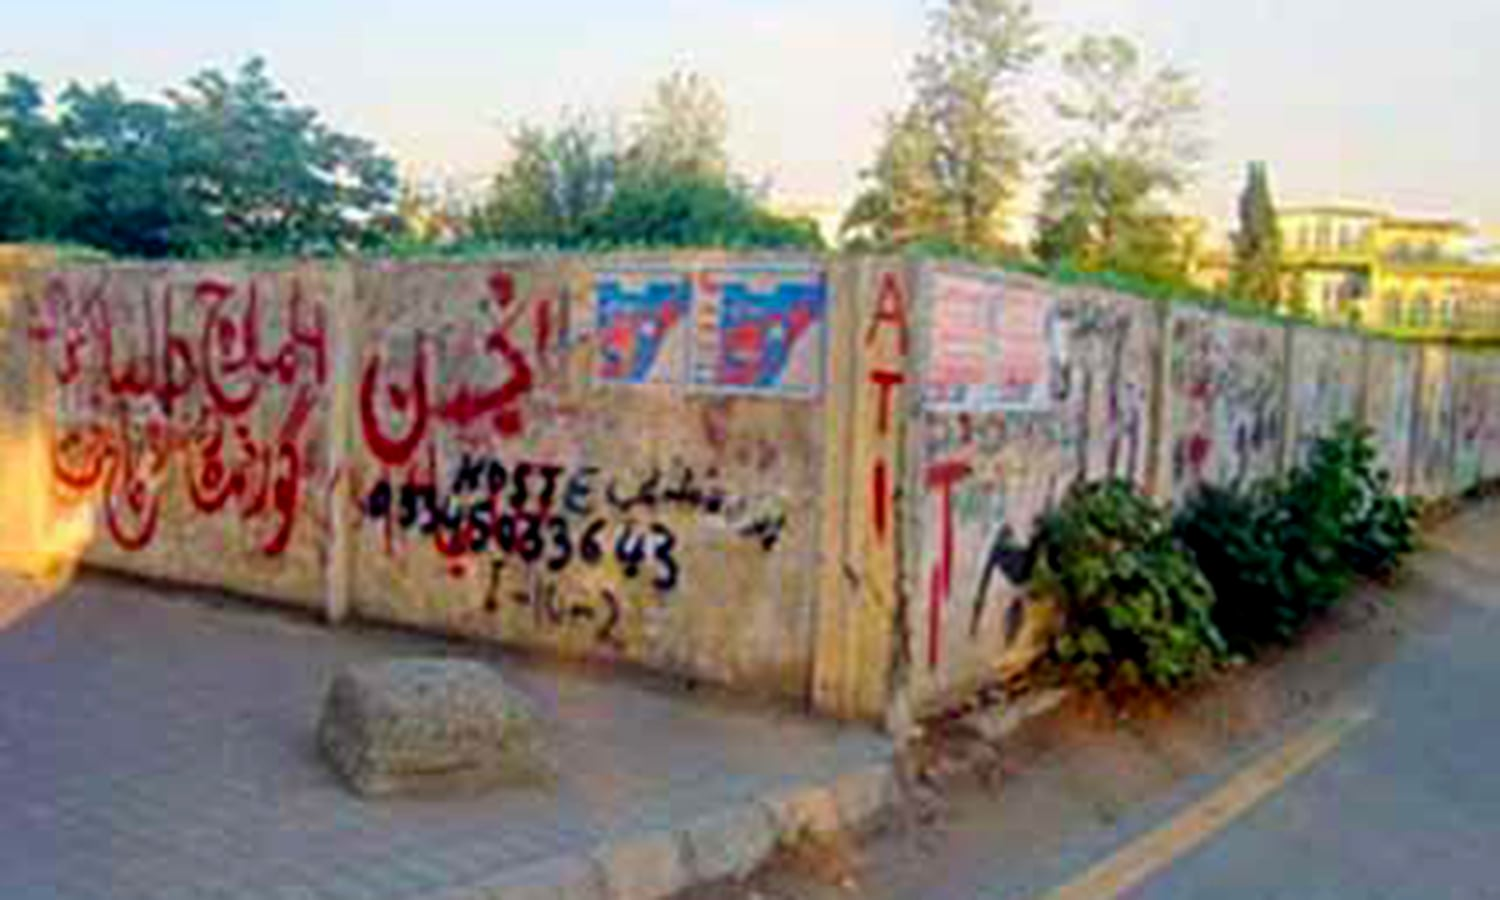 Many walls and monuments in Karachi are covered by anarchic graffiti sprayed by political parties, religious groups, quacks and small businesses. (Photo: Hosh Muhammad)